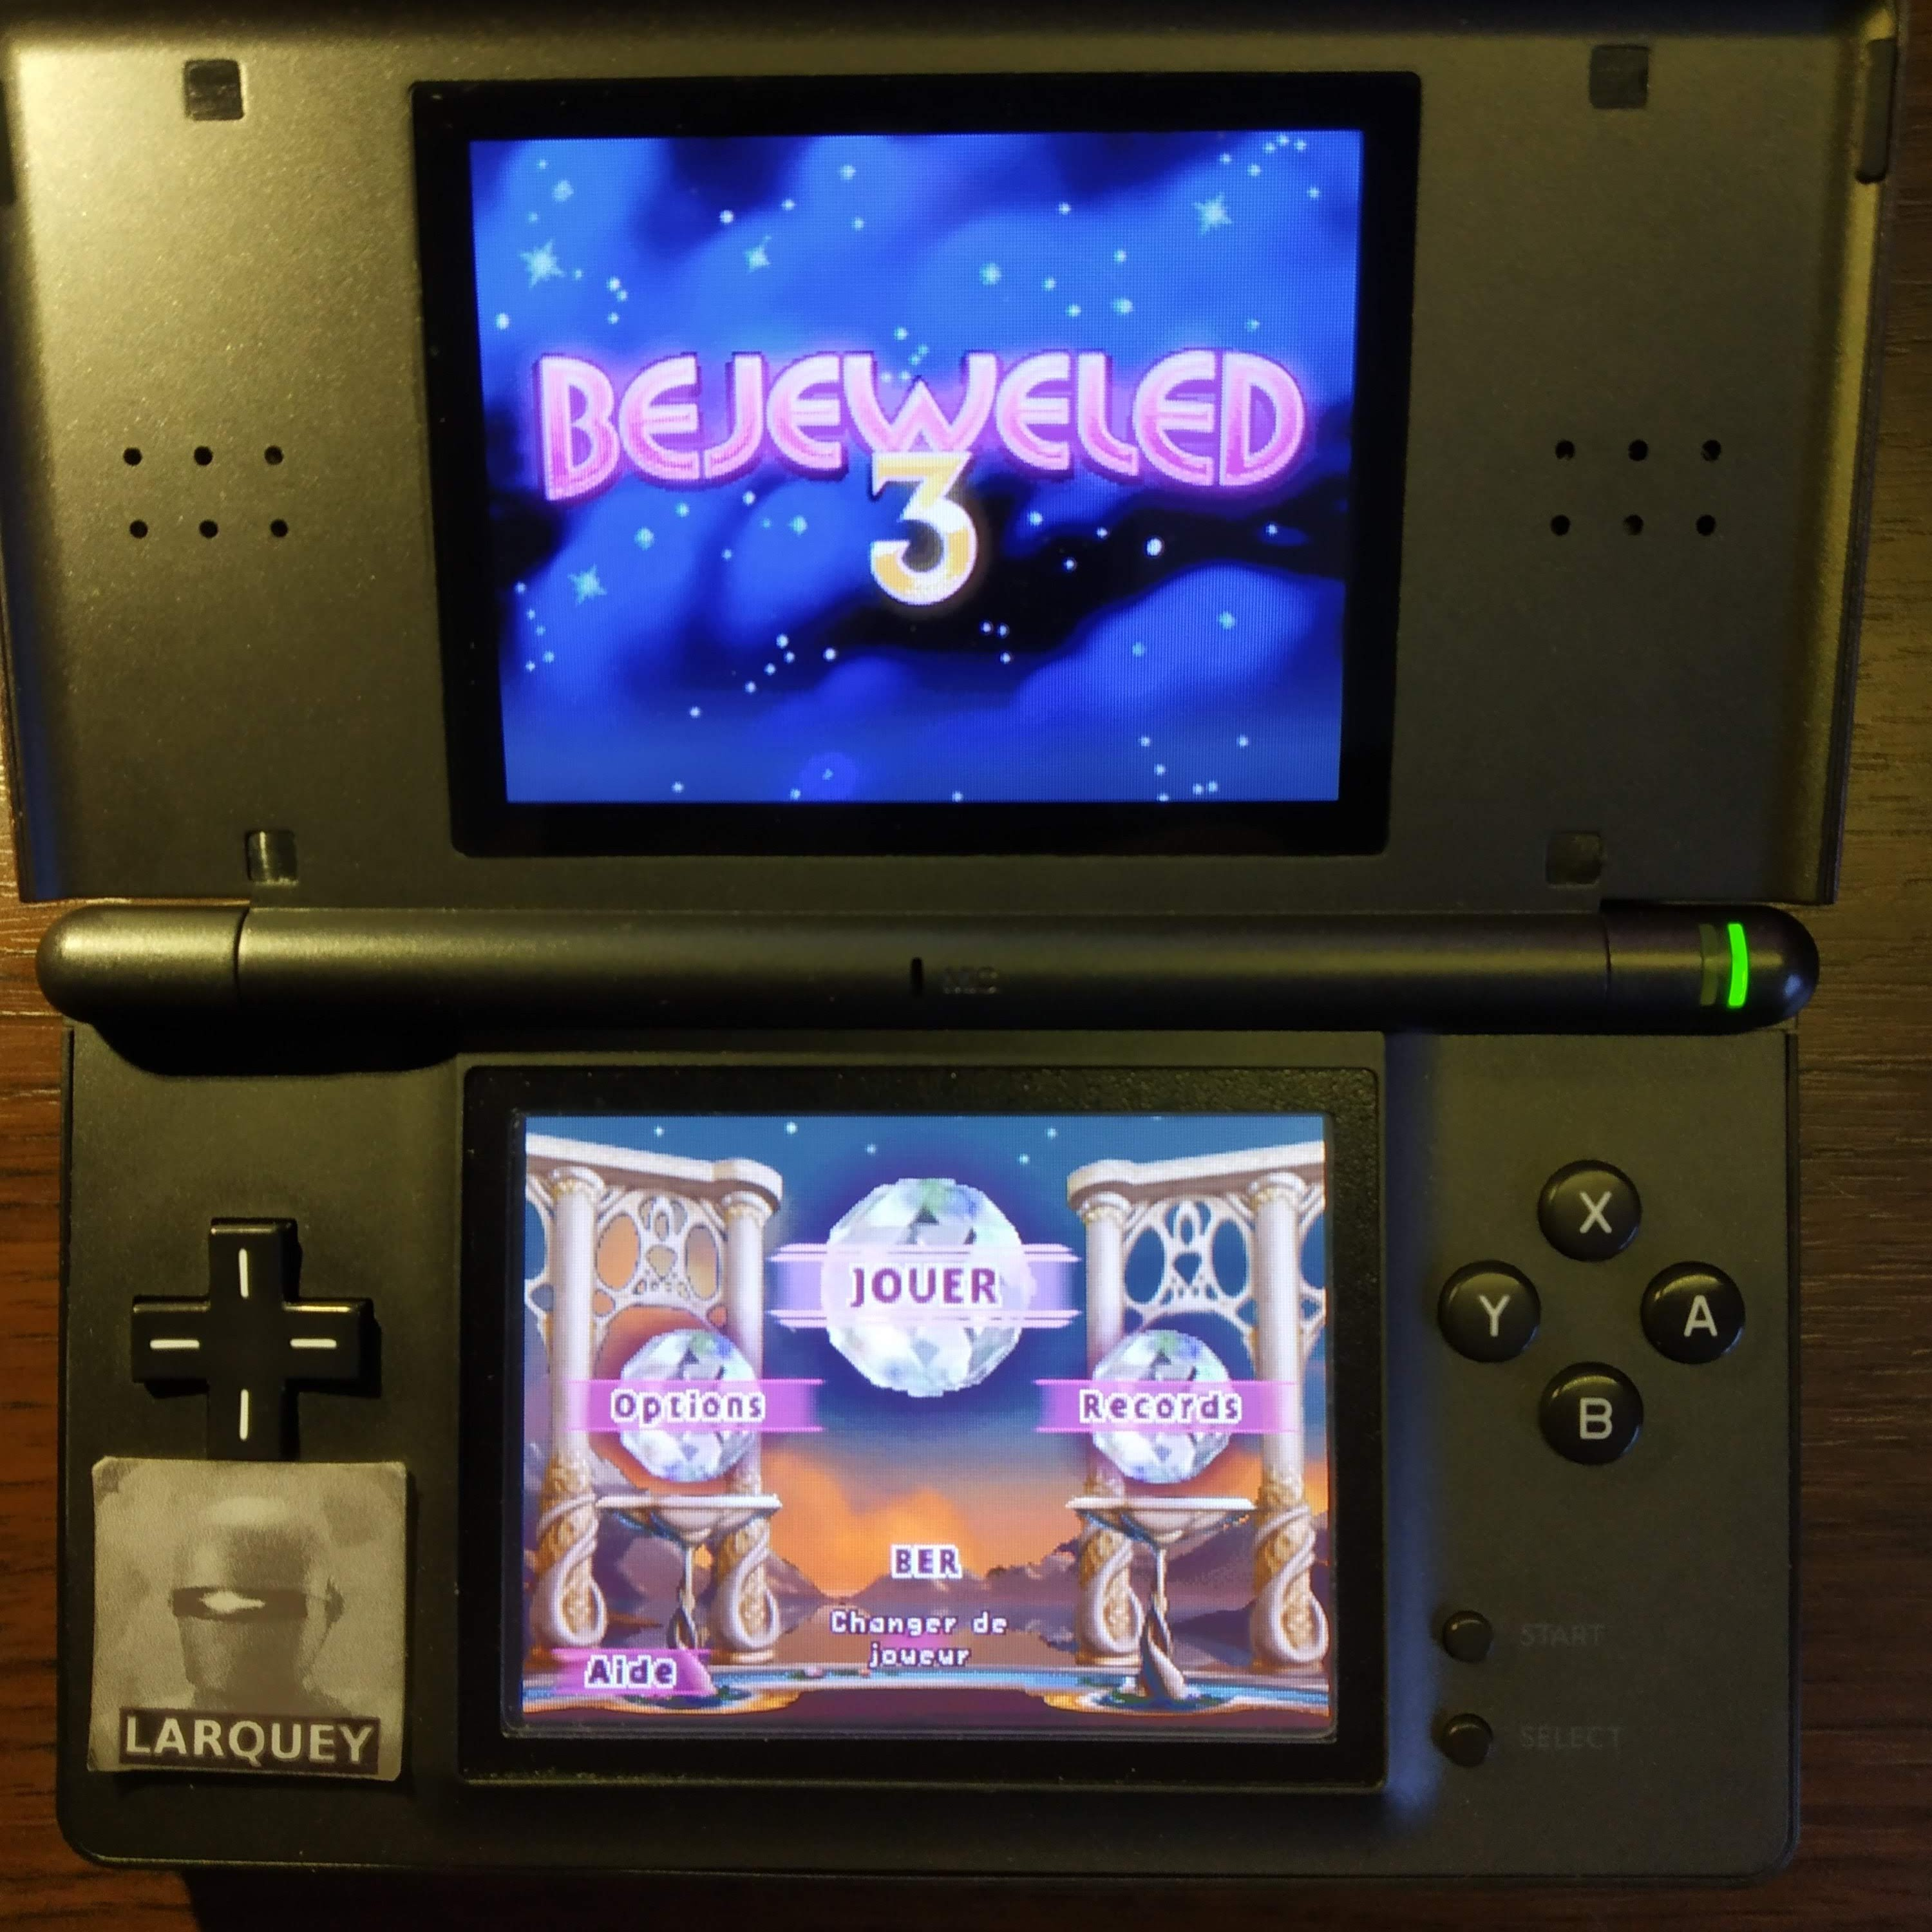 Larquey: Bejeweled 3: Classic [Best Move] (Nintendo DS) 3,150 points on 2020-09-24 12:22:25